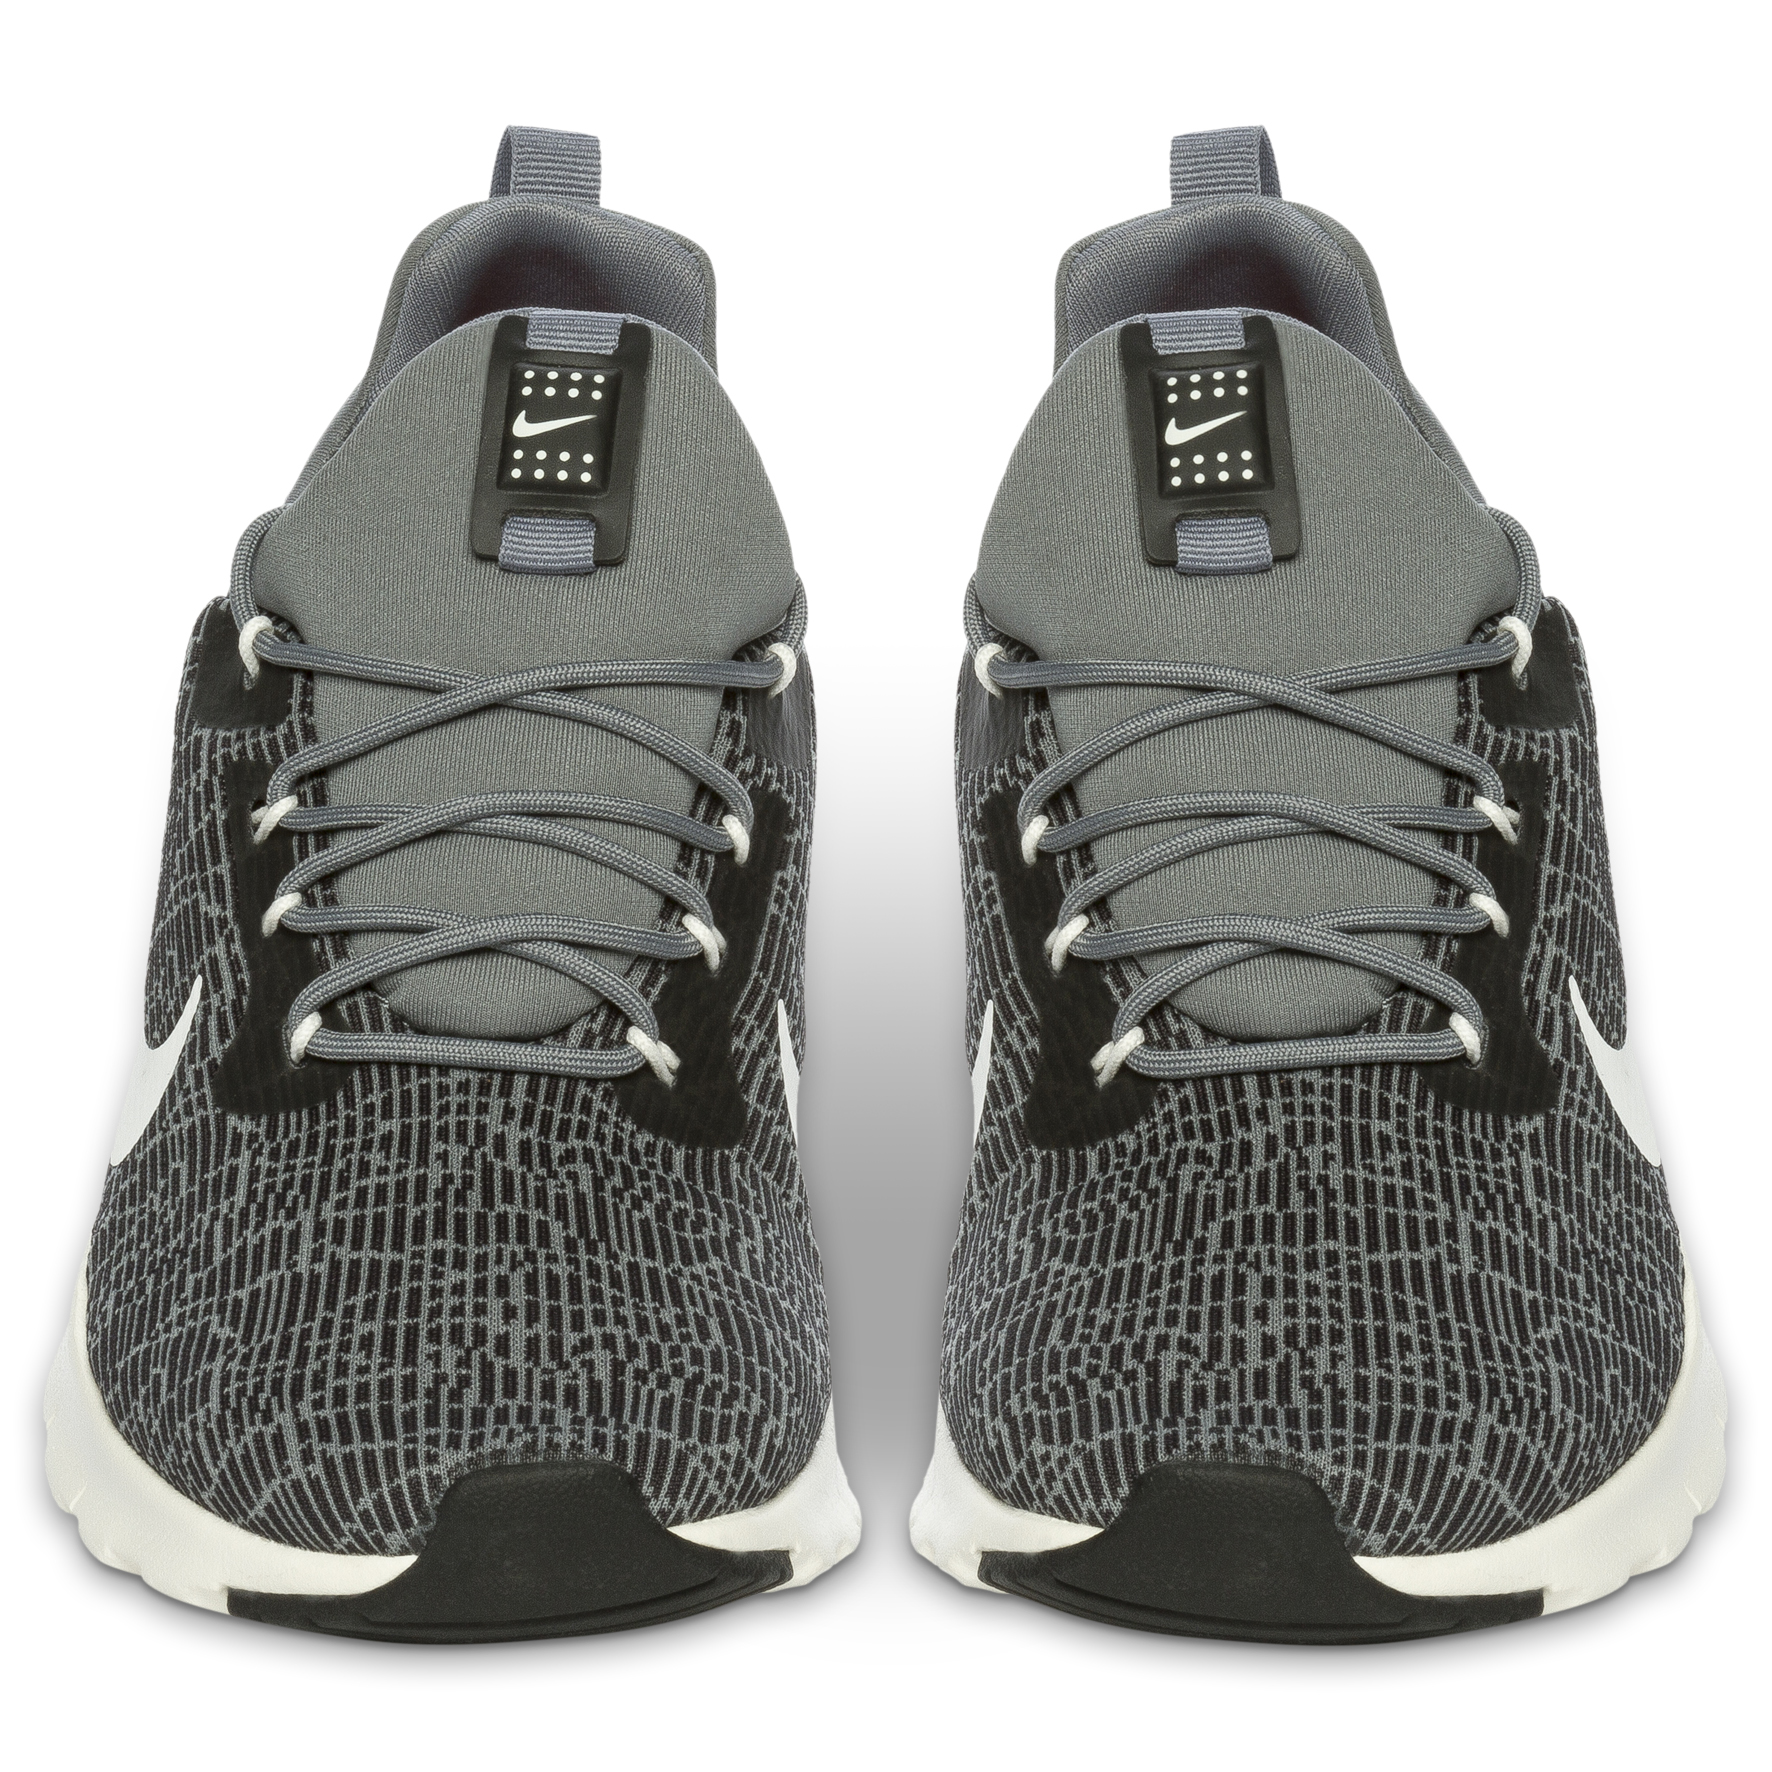 new style d8616 869c2 Nike Air Max Motion Racer - Svarta 309800 feetfirst.se